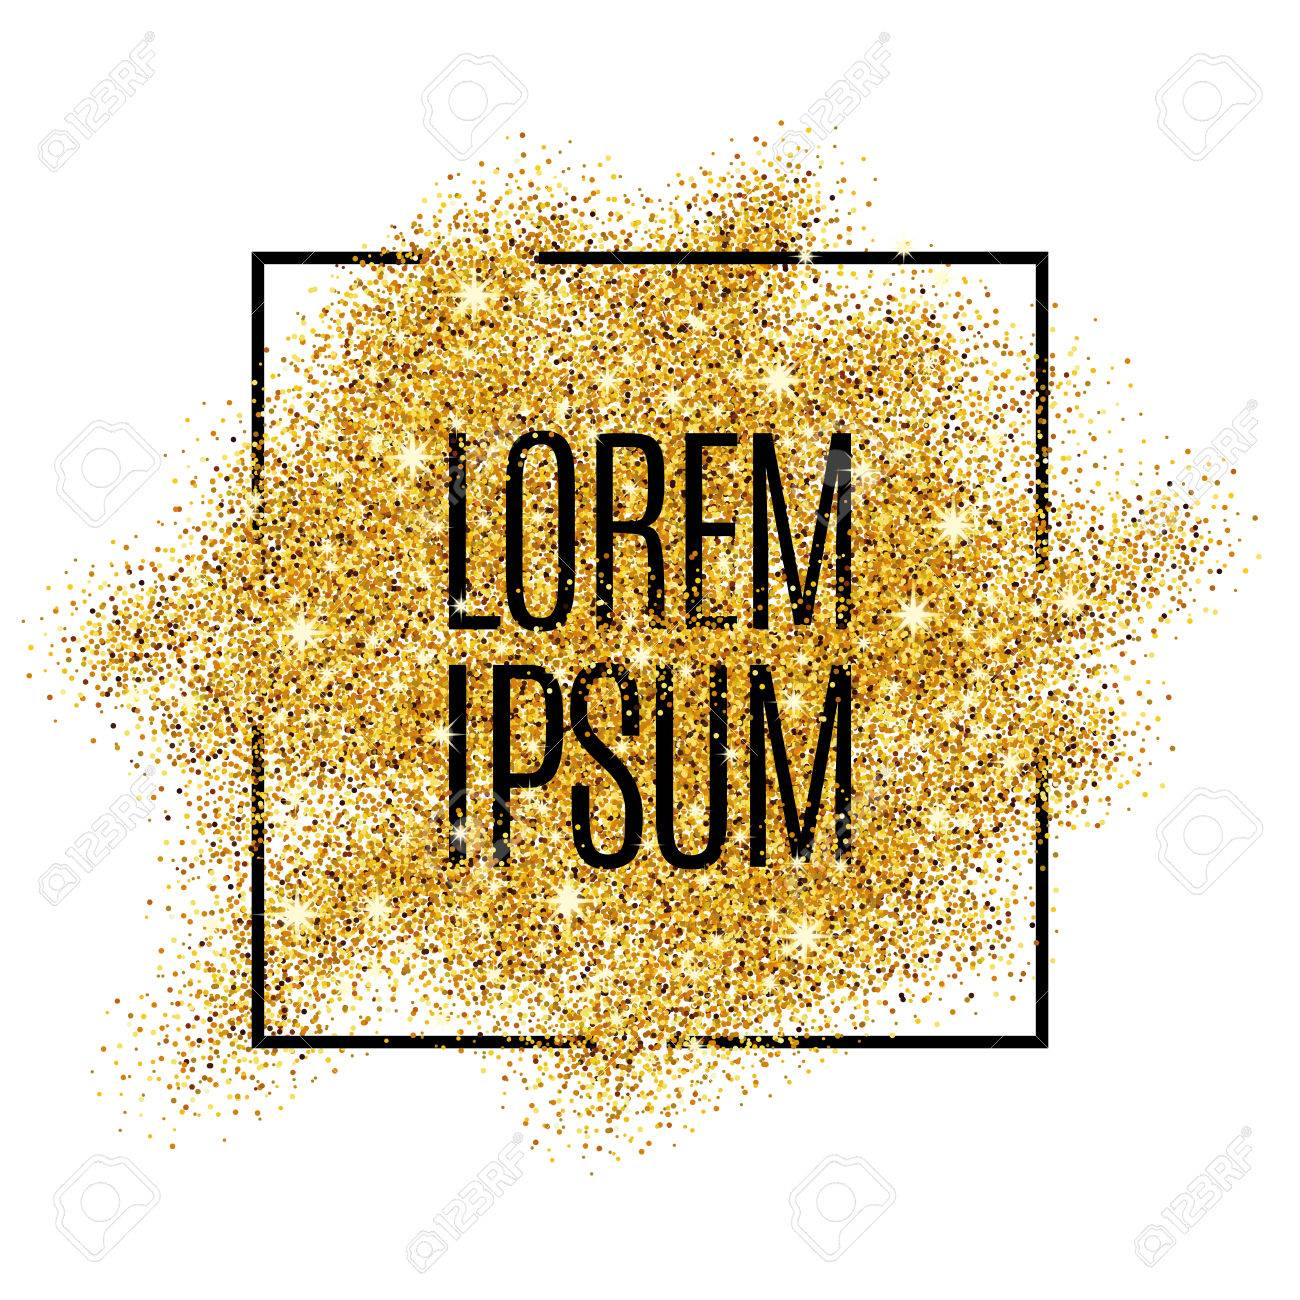 Gold background for poster, shopping, for sale sign, discount, marketing, selling, web, header. Abstract golden background for text, type, quote. Gold blur background - 52579336